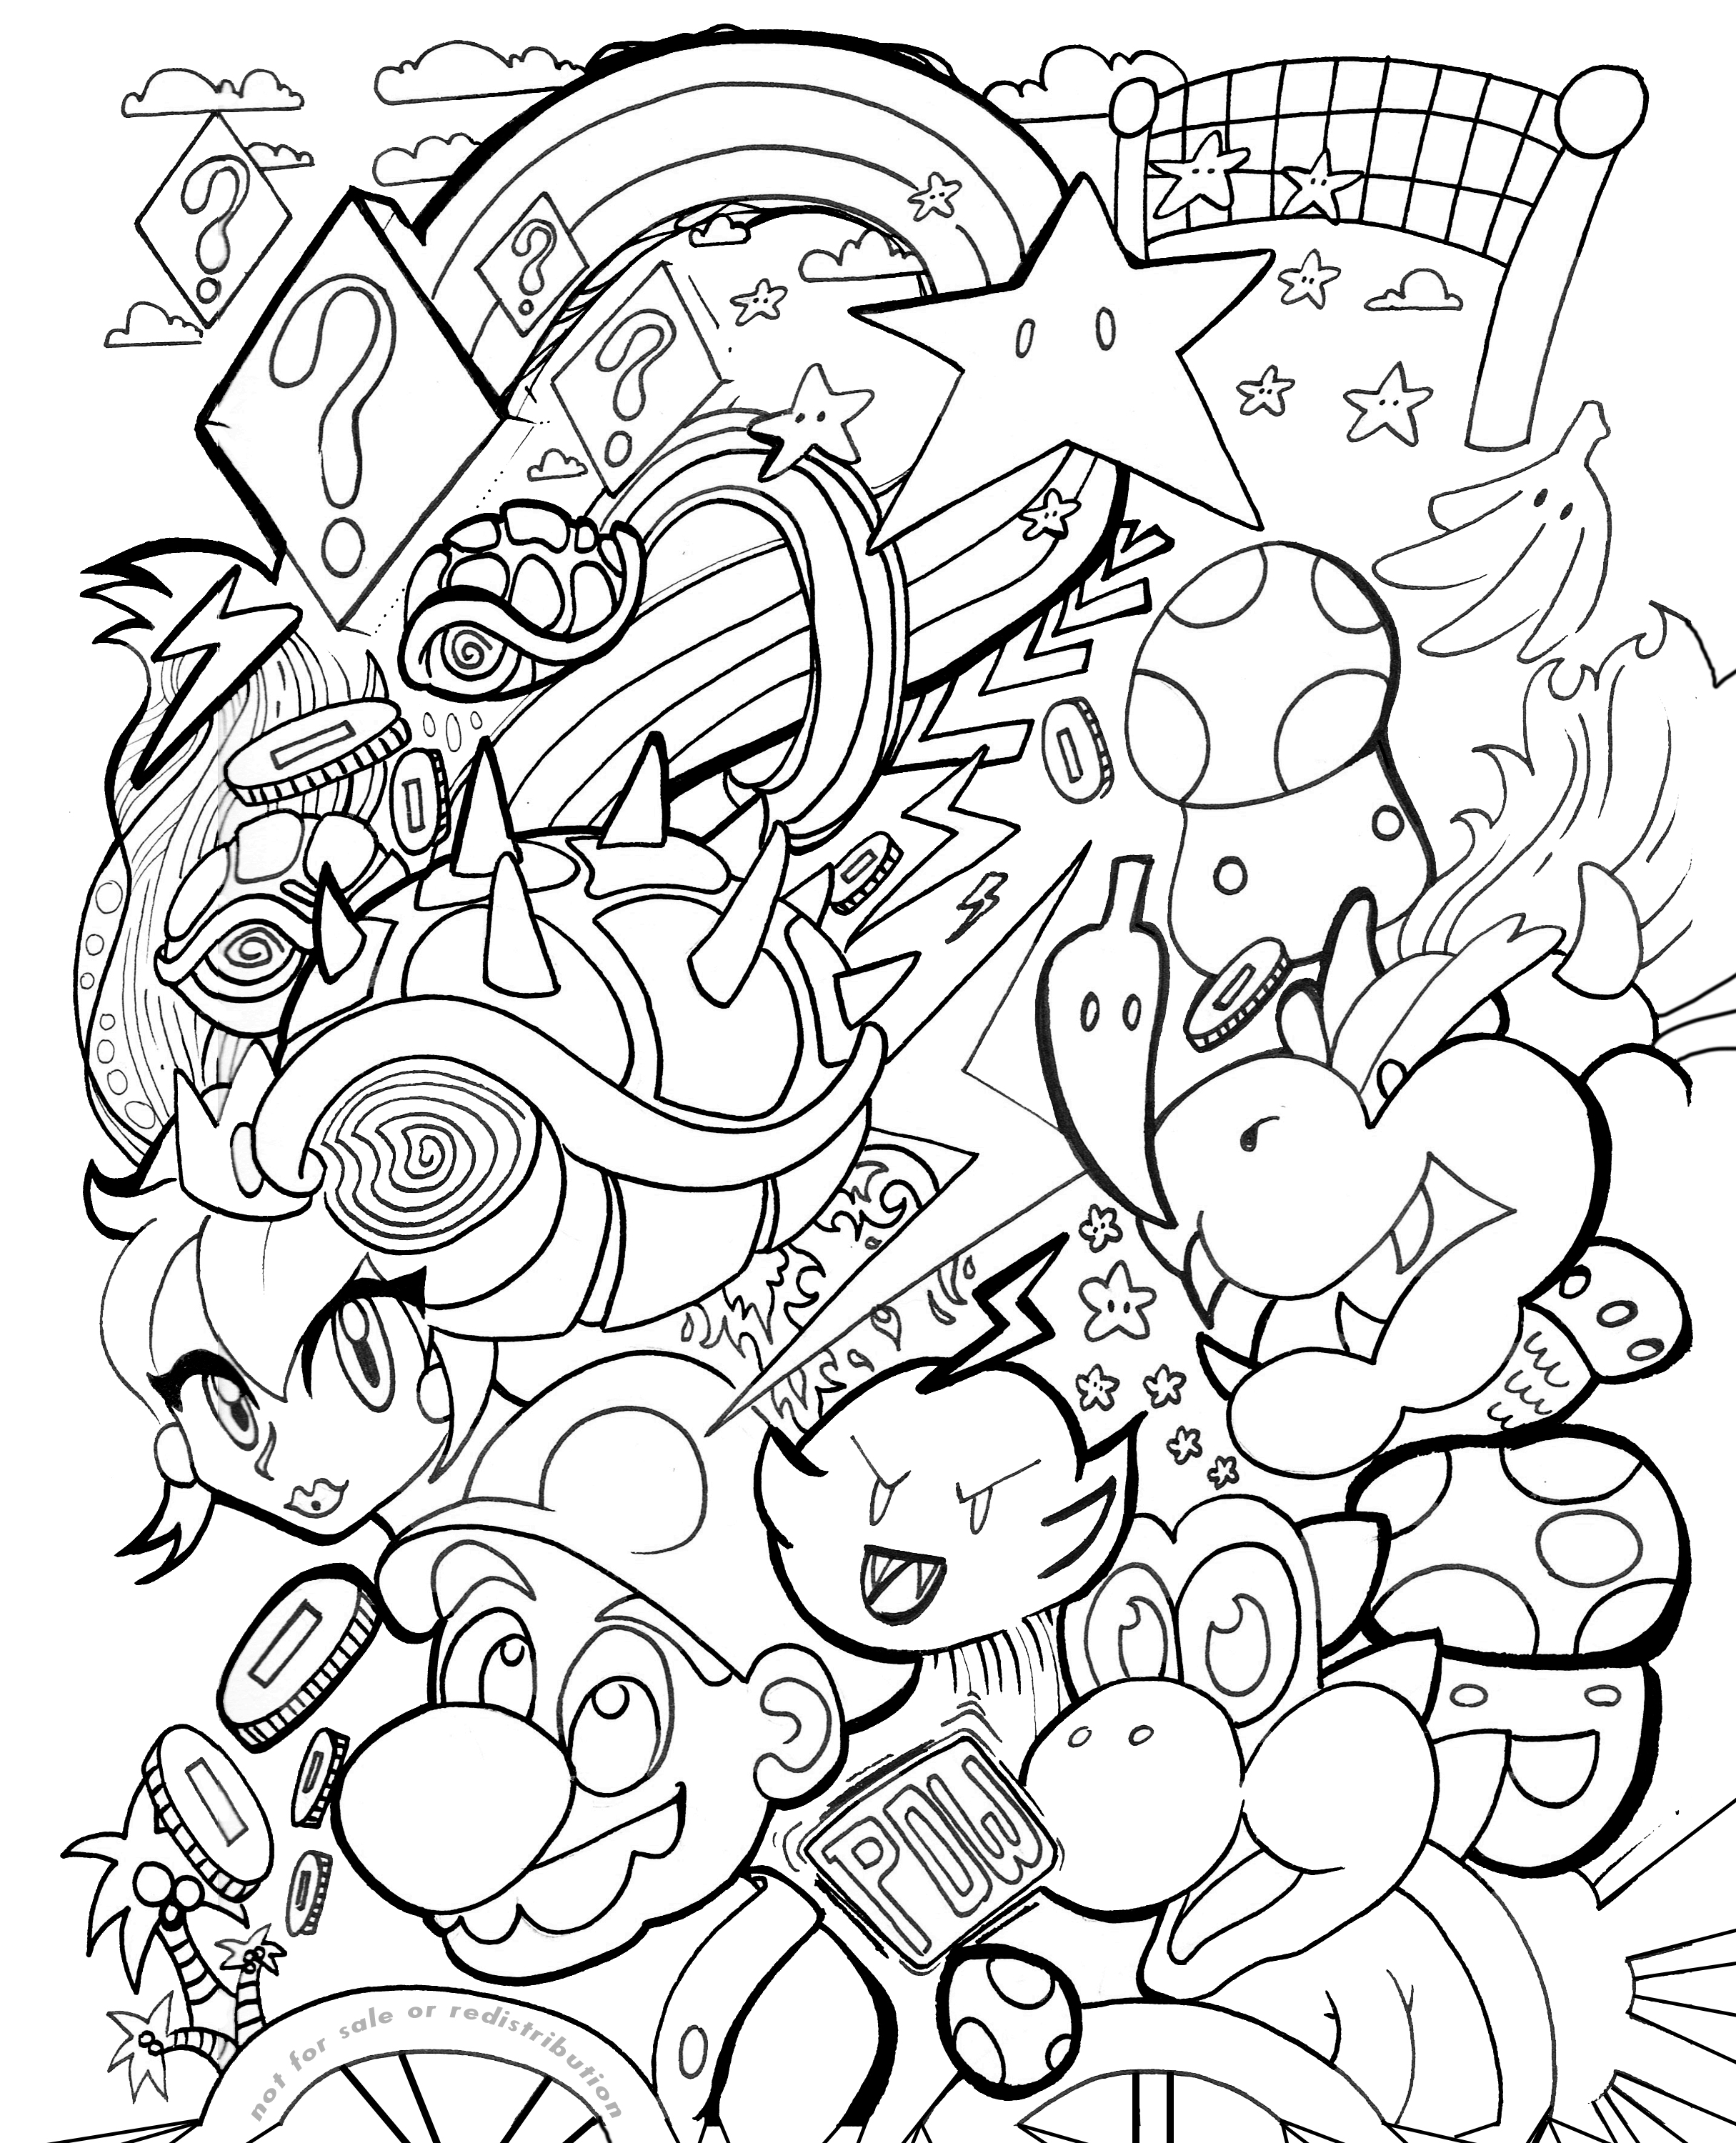 mario and his friends racing to the finish line this page features on of the most popular video games of our time mario kart